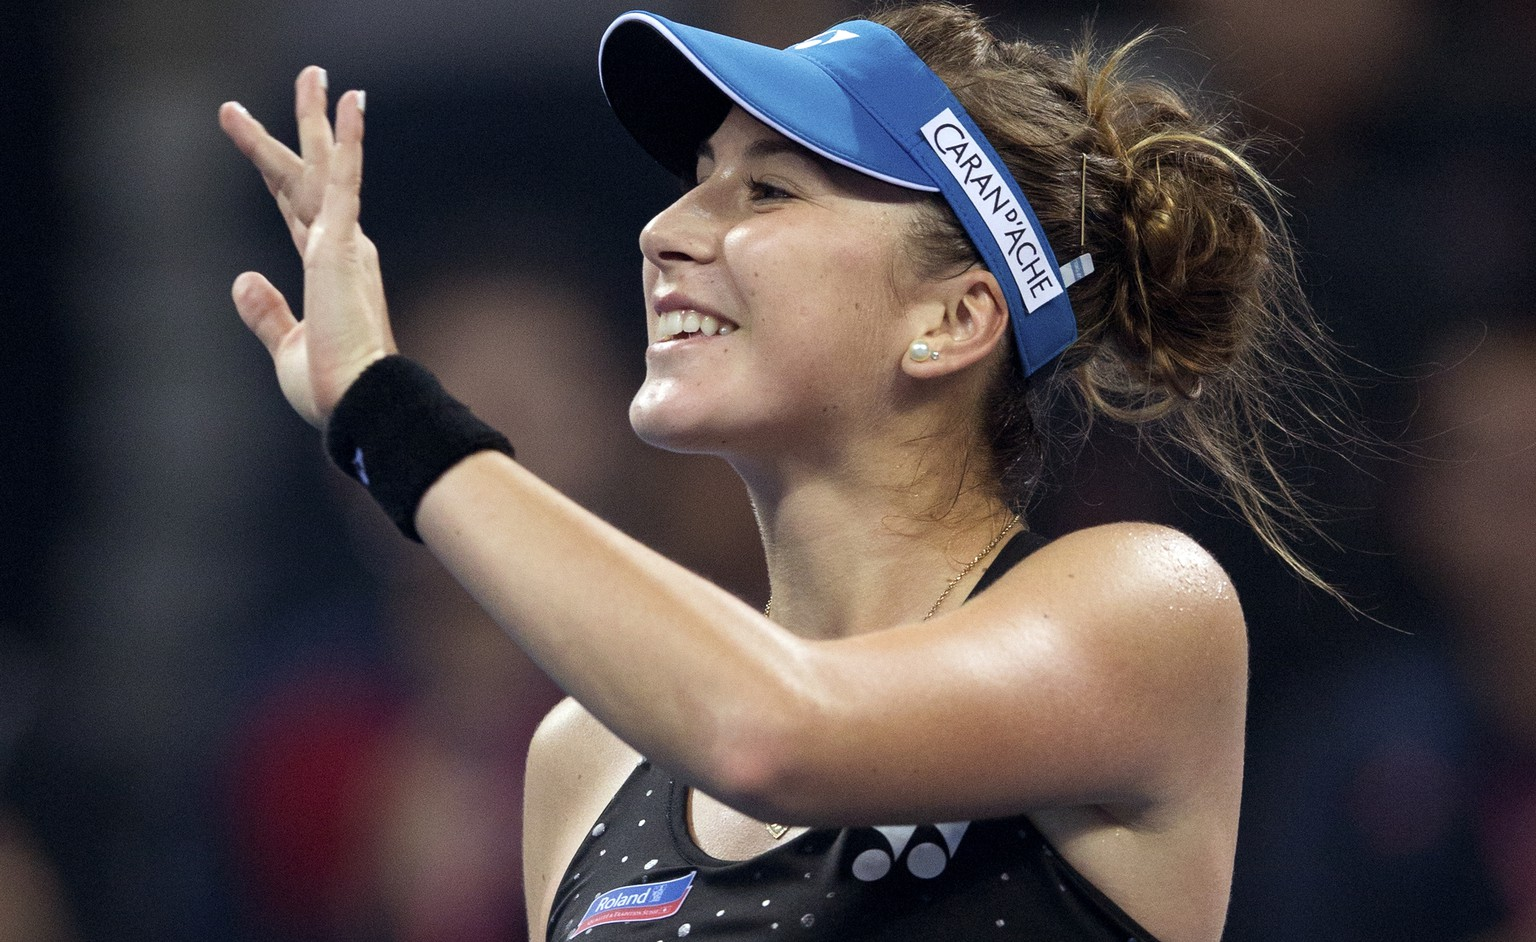 Belinda Bencic of Switzerland gestures to spectators after defeating Madison Brengle of the United States in their first round of the China Open tennis tournament at the National Tennis Stadium in Beijing, Monday, Oct. 5, 2015. (AP Photo/Andy Wong)